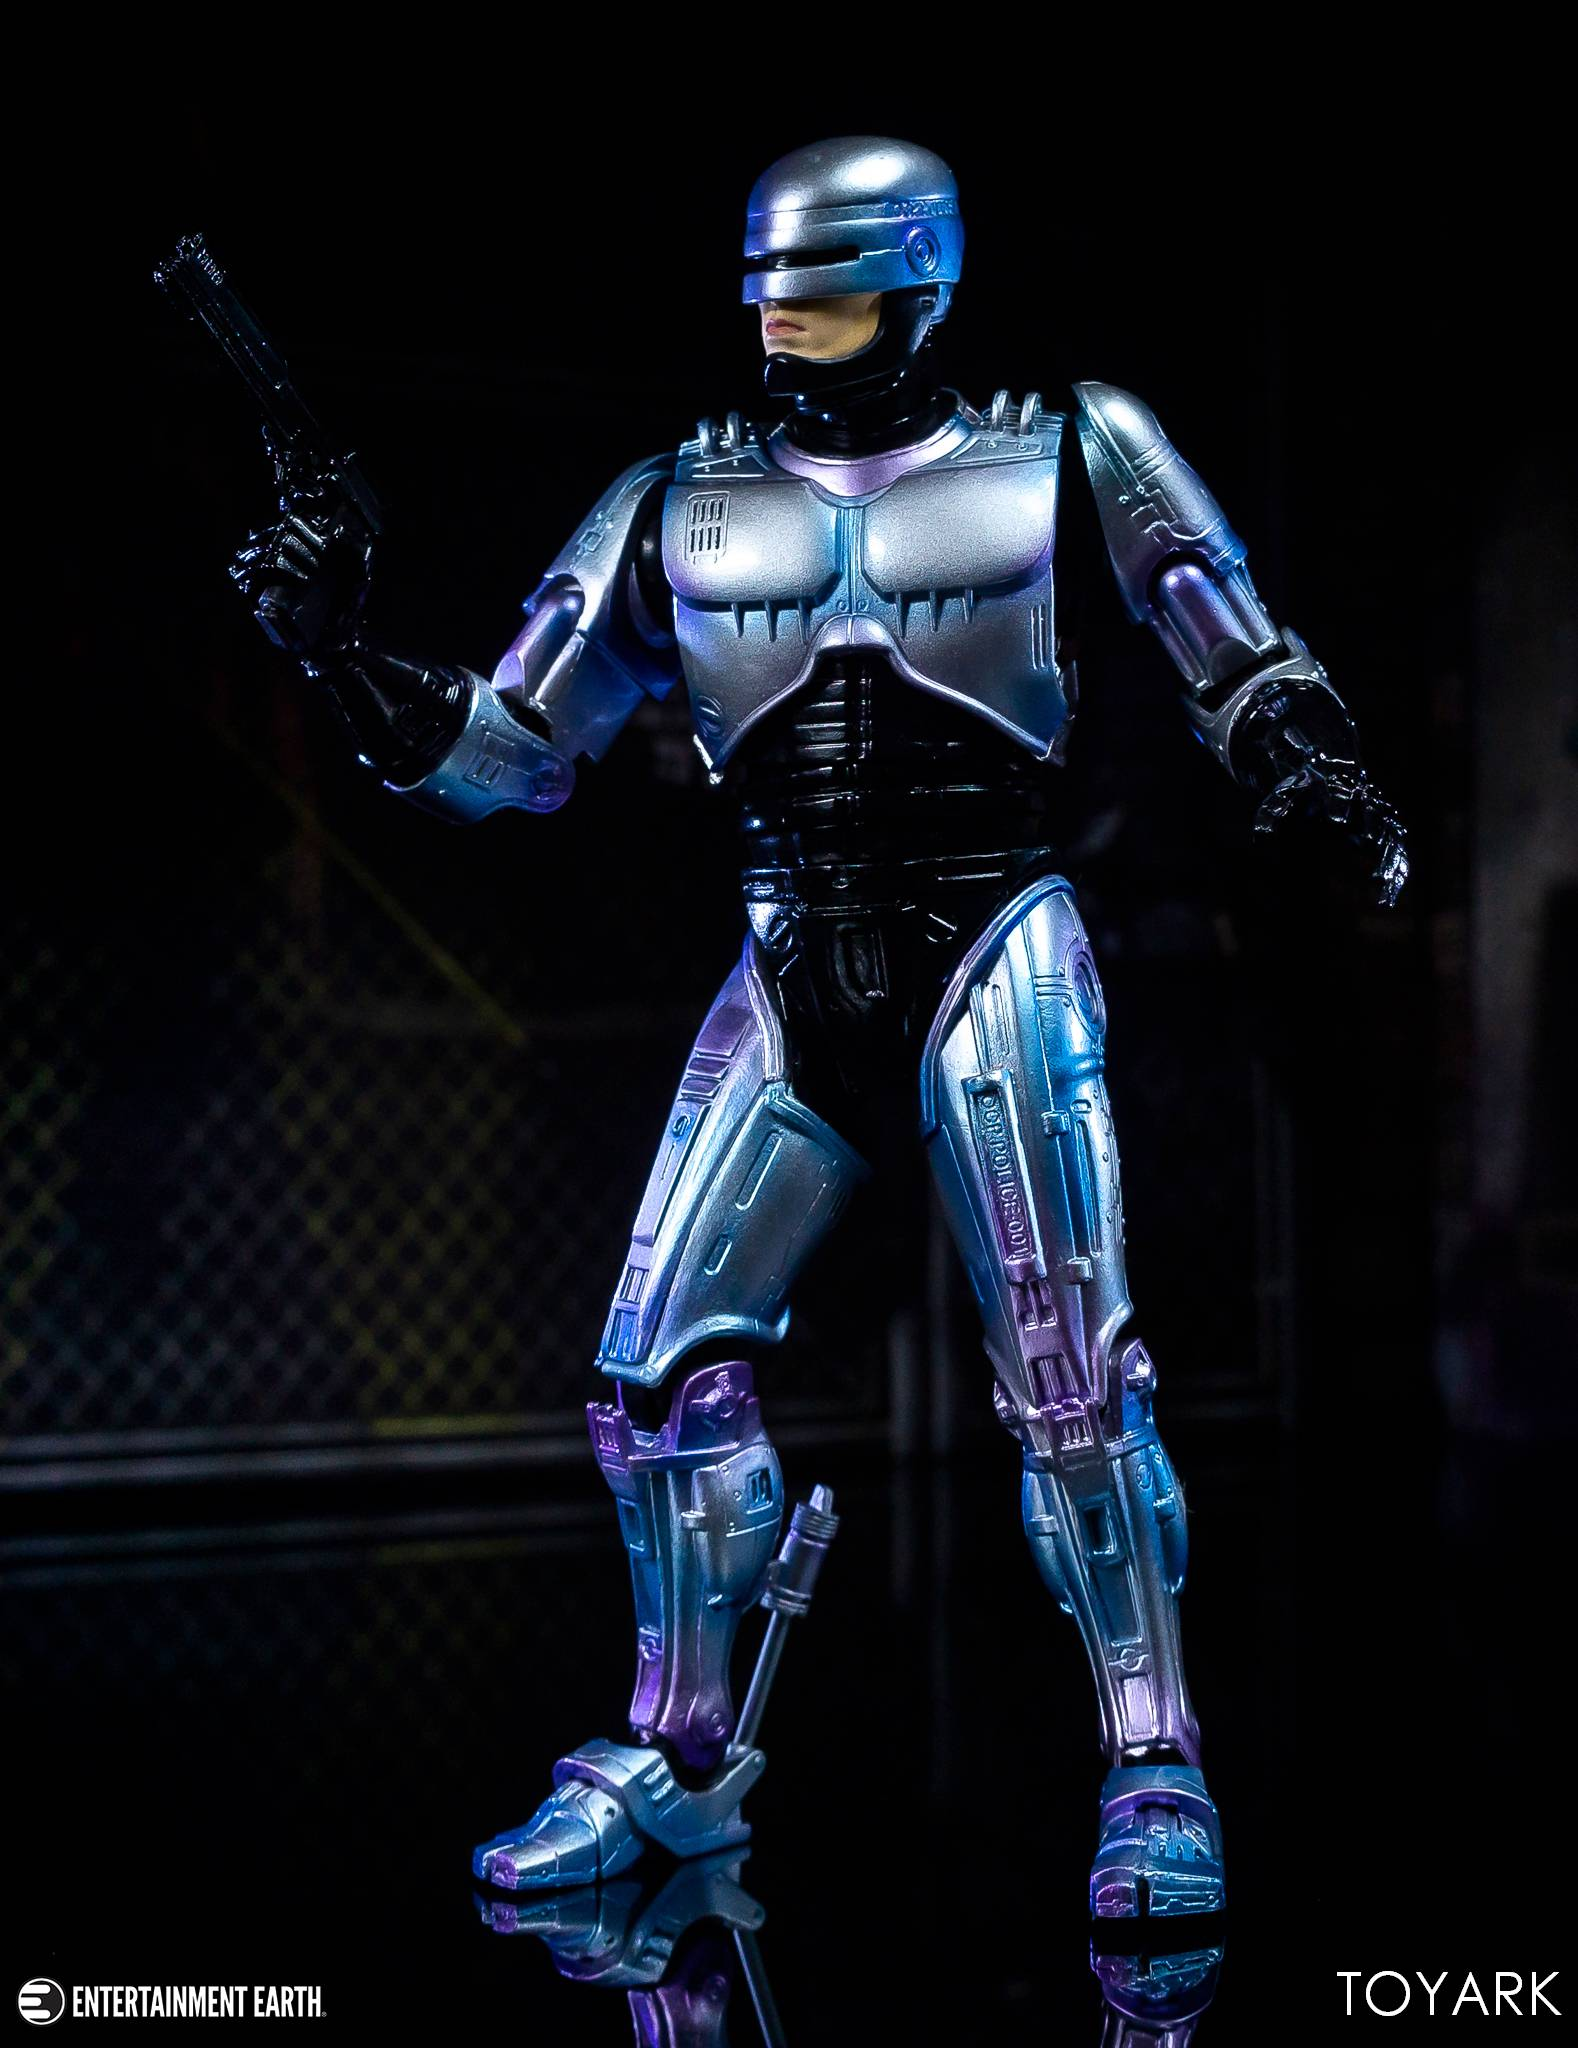 https://news.toyark.com/wp-content/uploads/sites/4/2019/05/MAFEX-Robocop-2-Gallery-017.jpg